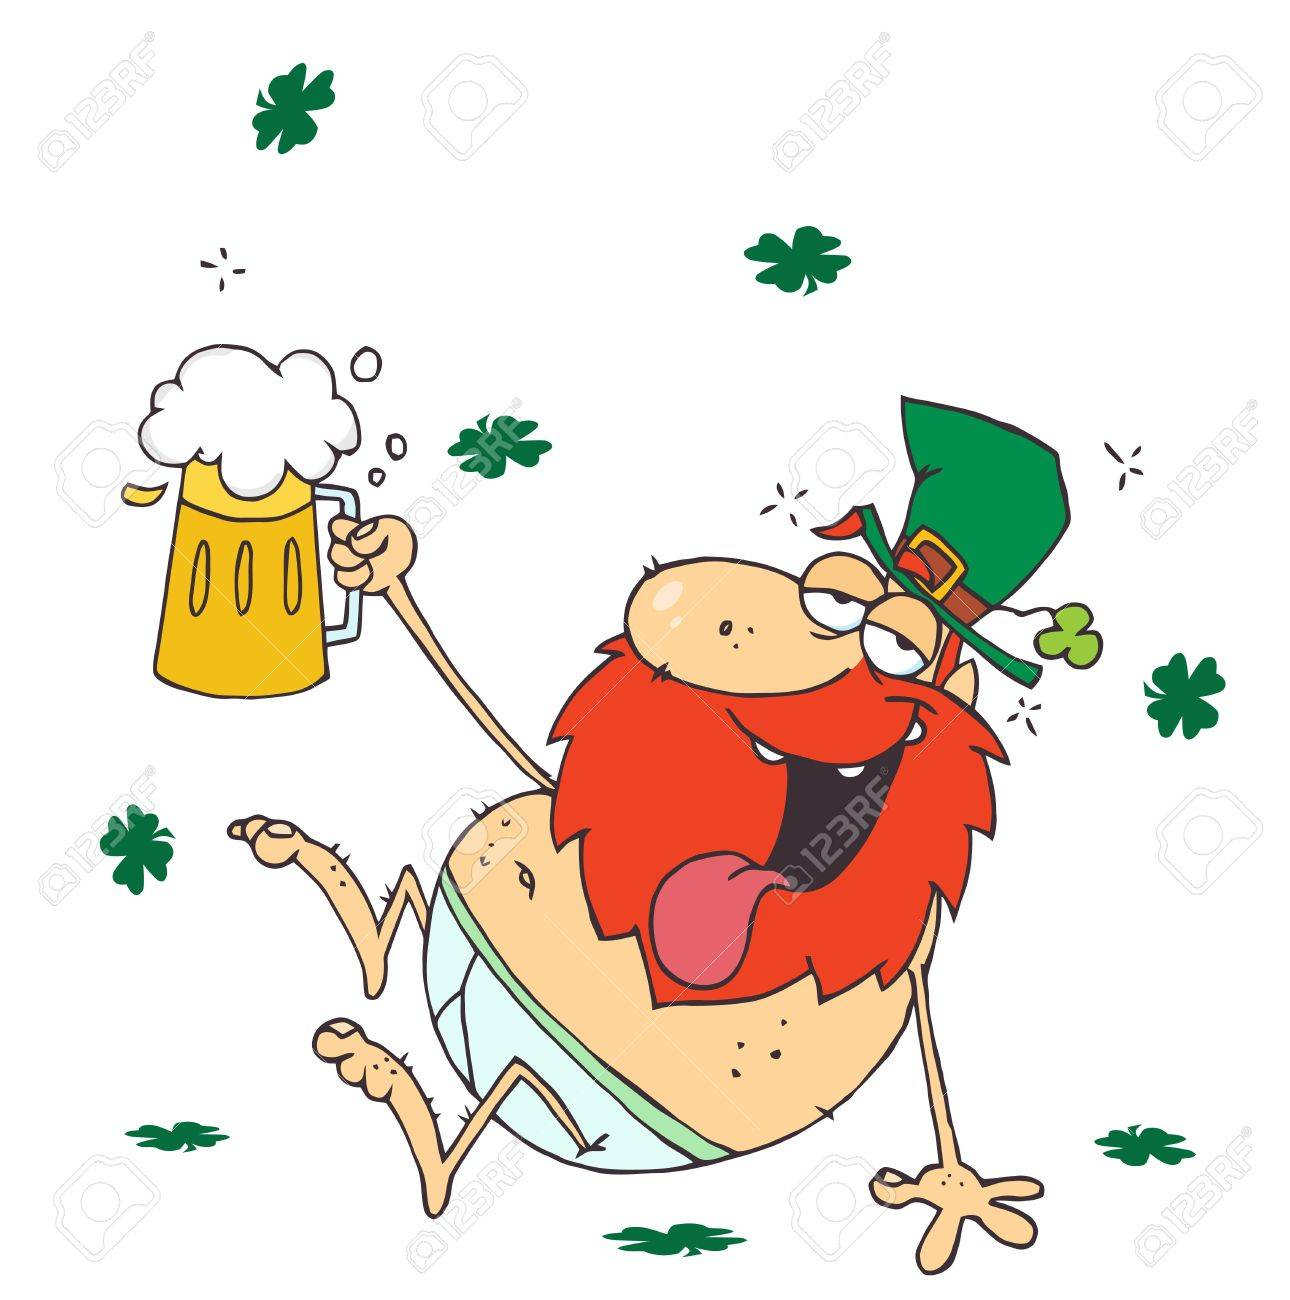 Drunk Leprechaun Lying Naked With Beer.